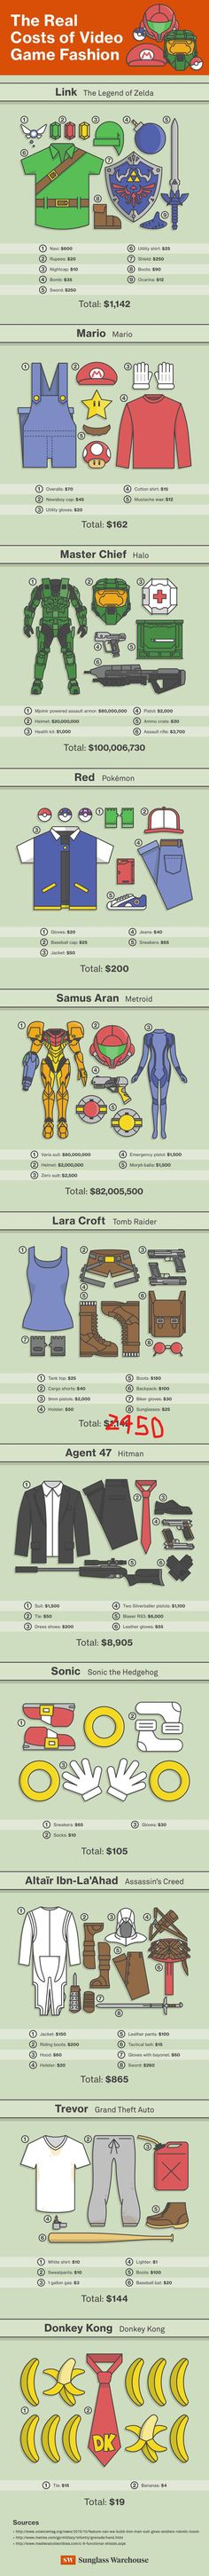 The cost of video game fashion